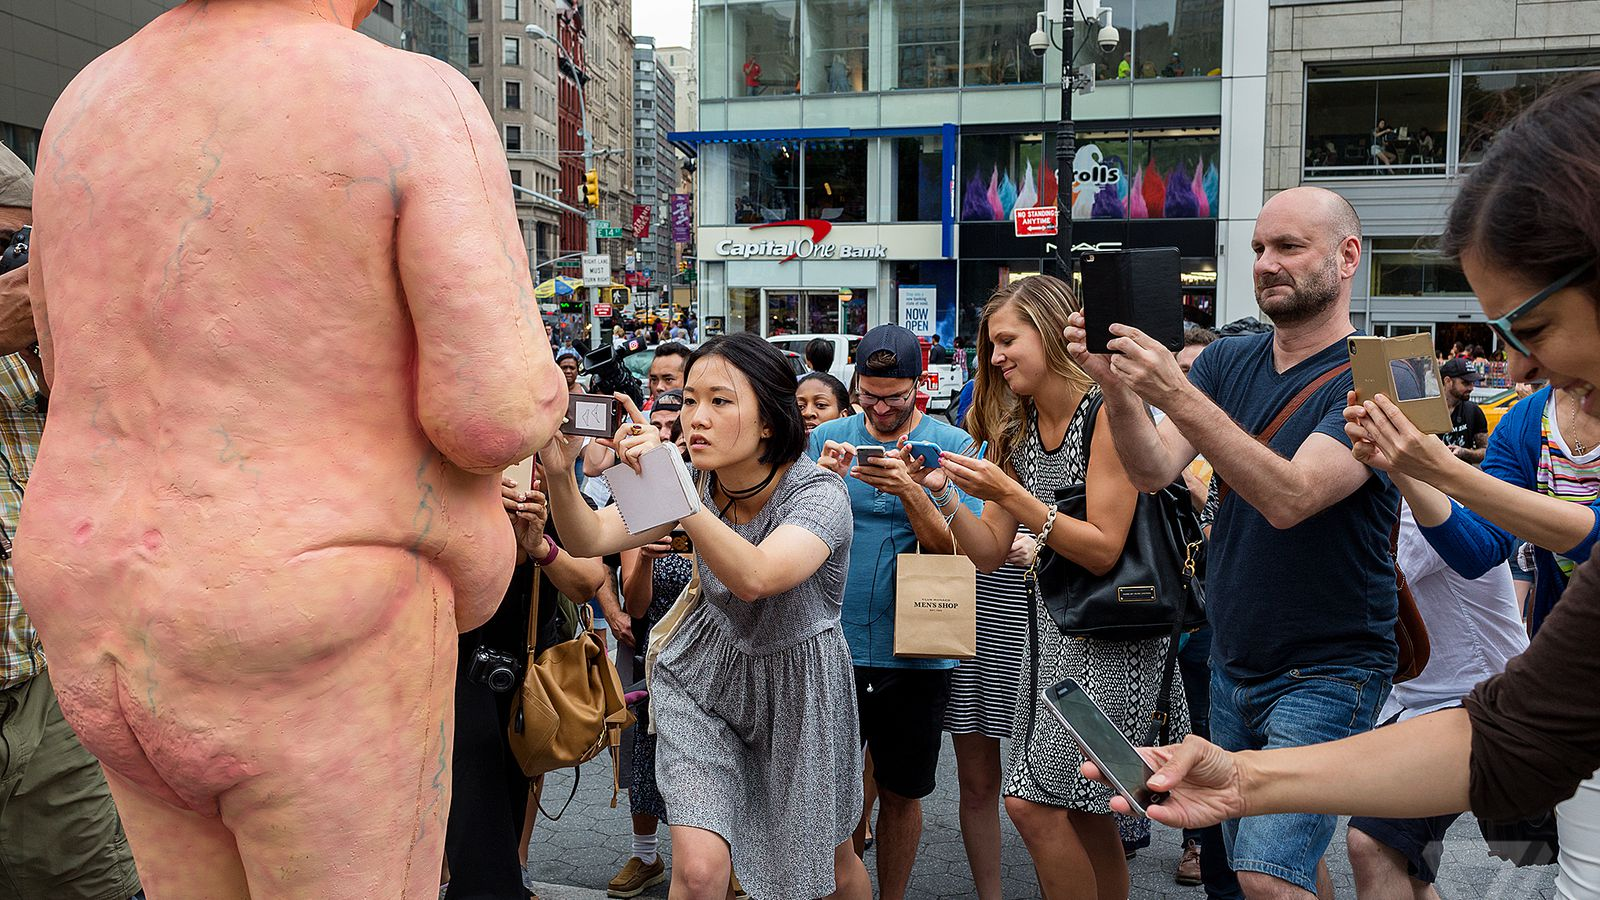 11 photos of NYC's naked Trump statue